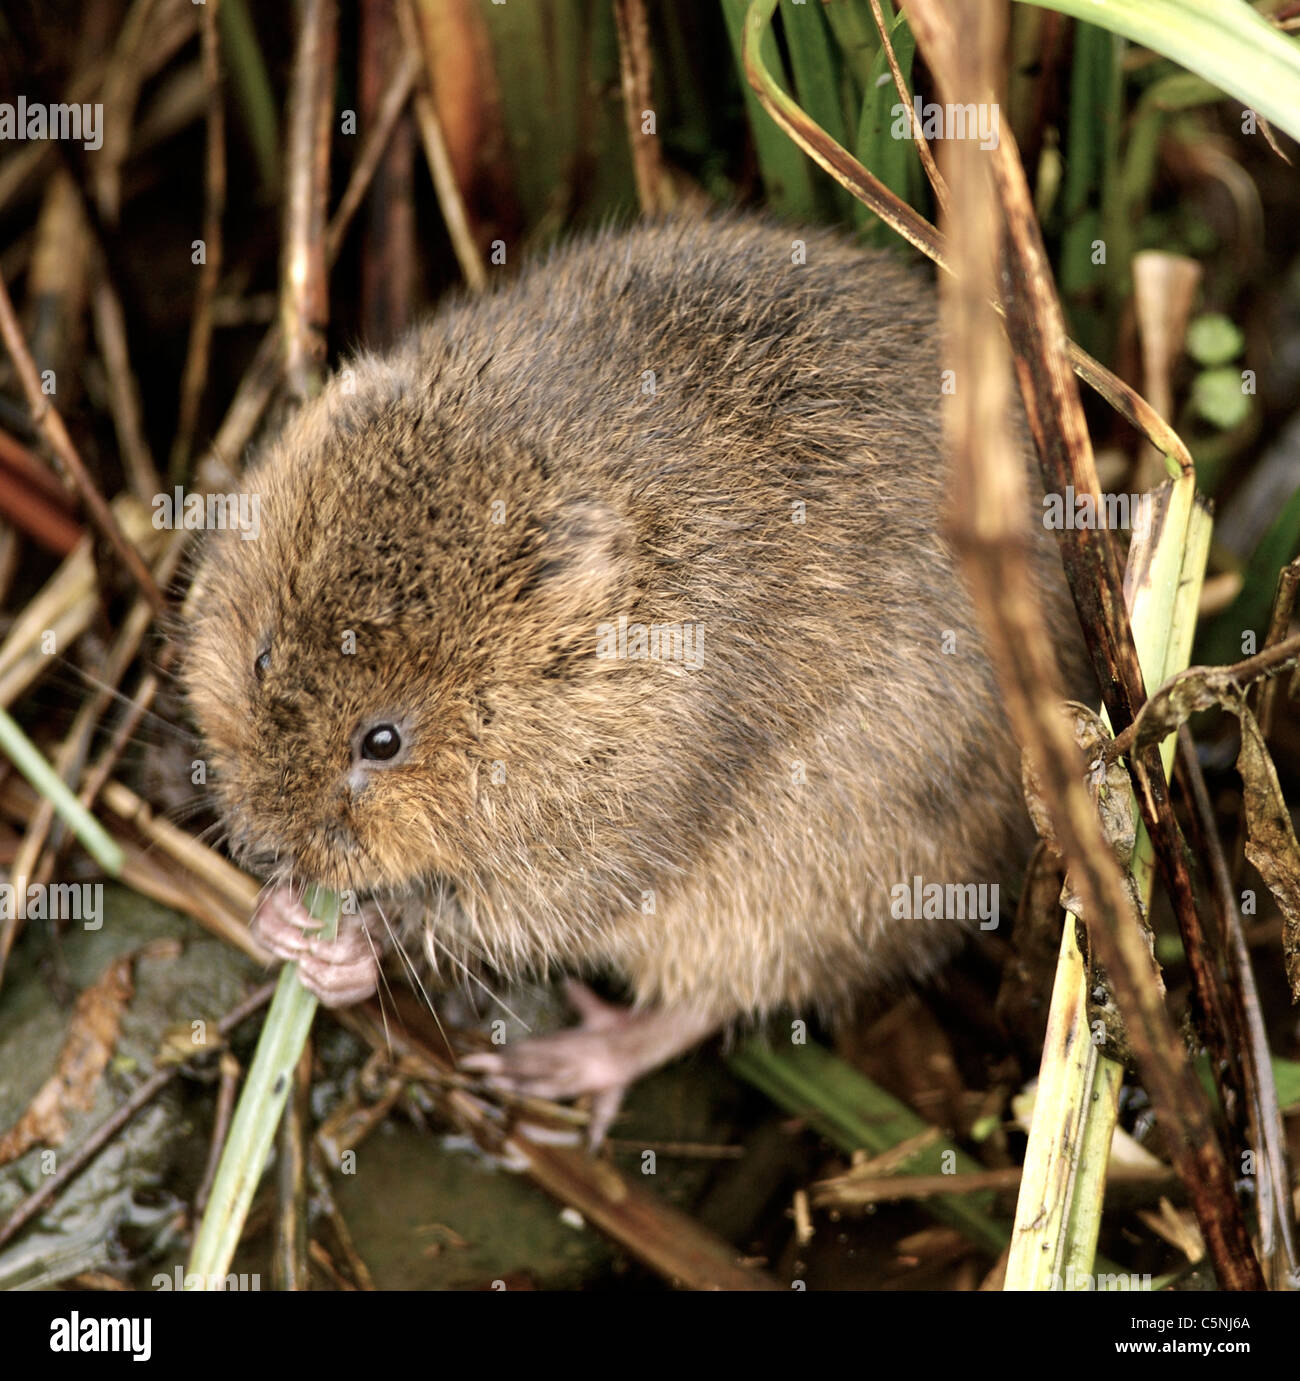 The European Water Vole or Northern Water Vole, Arvicola amphibius (formerly A. terrestris), is a semi-aquatic rodent. Stock Photo